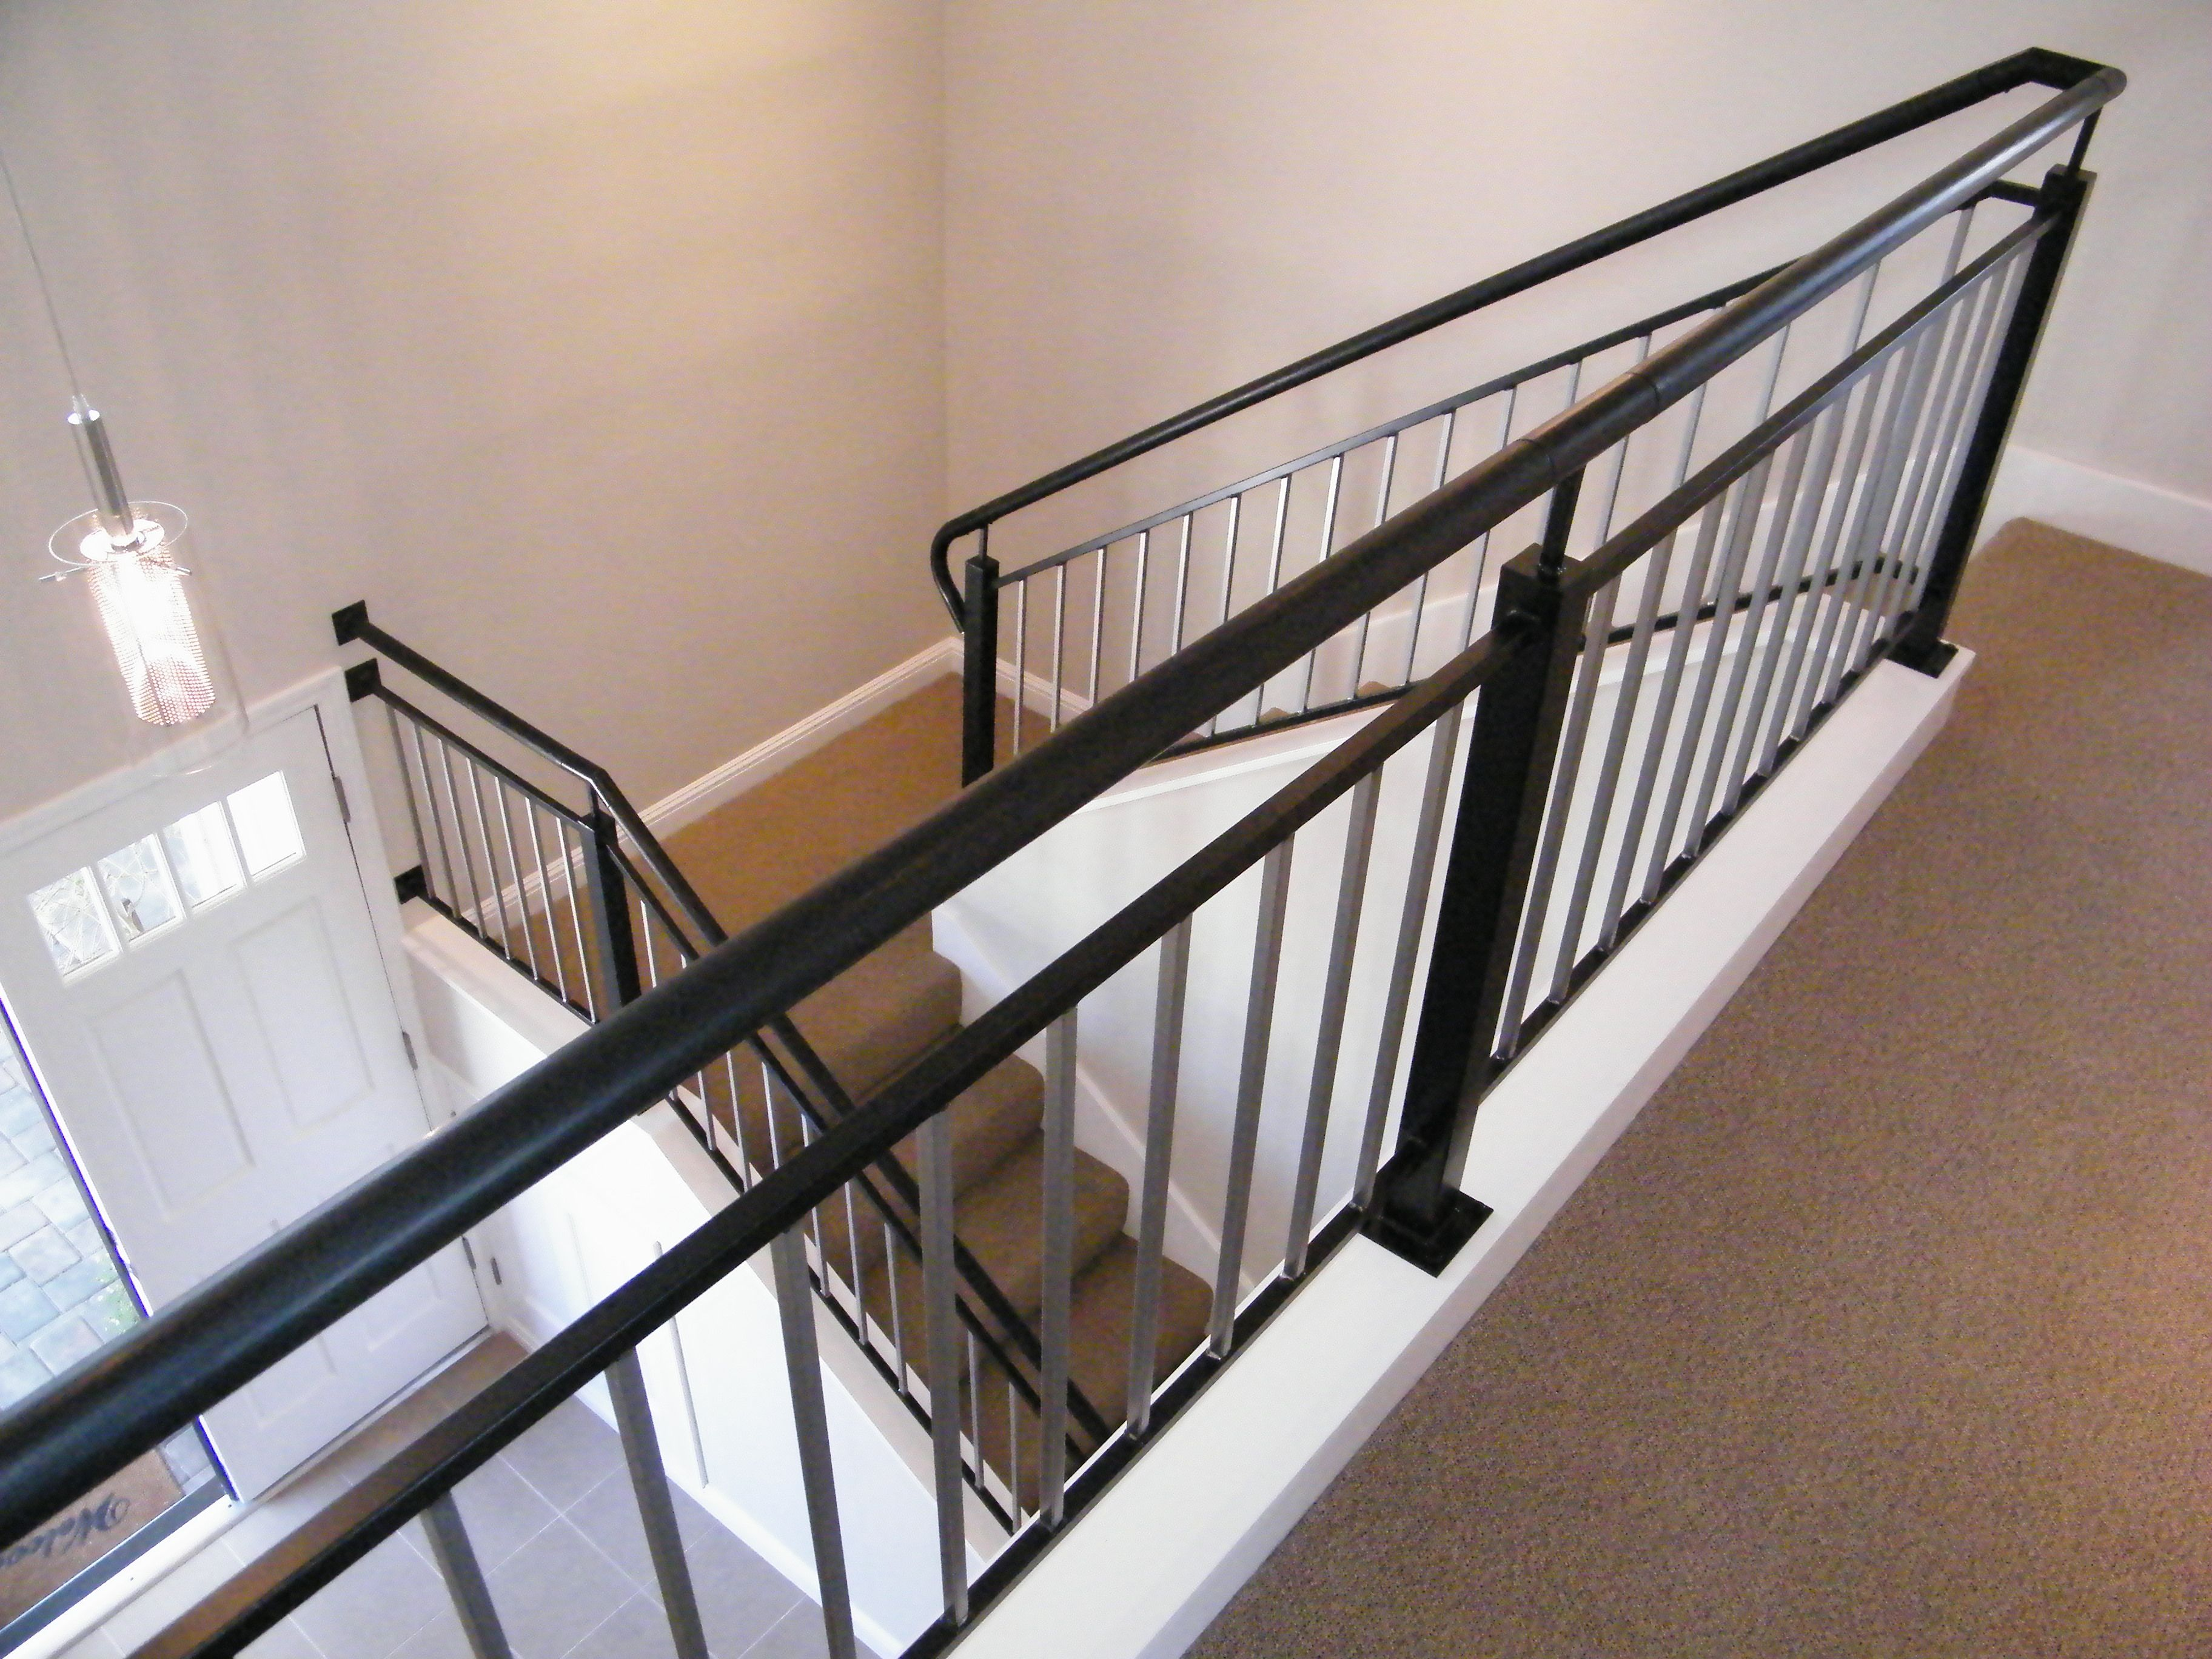 Wood and iron railing, curb mounted on stair riser allows for an open airy entry to the the second story hall.